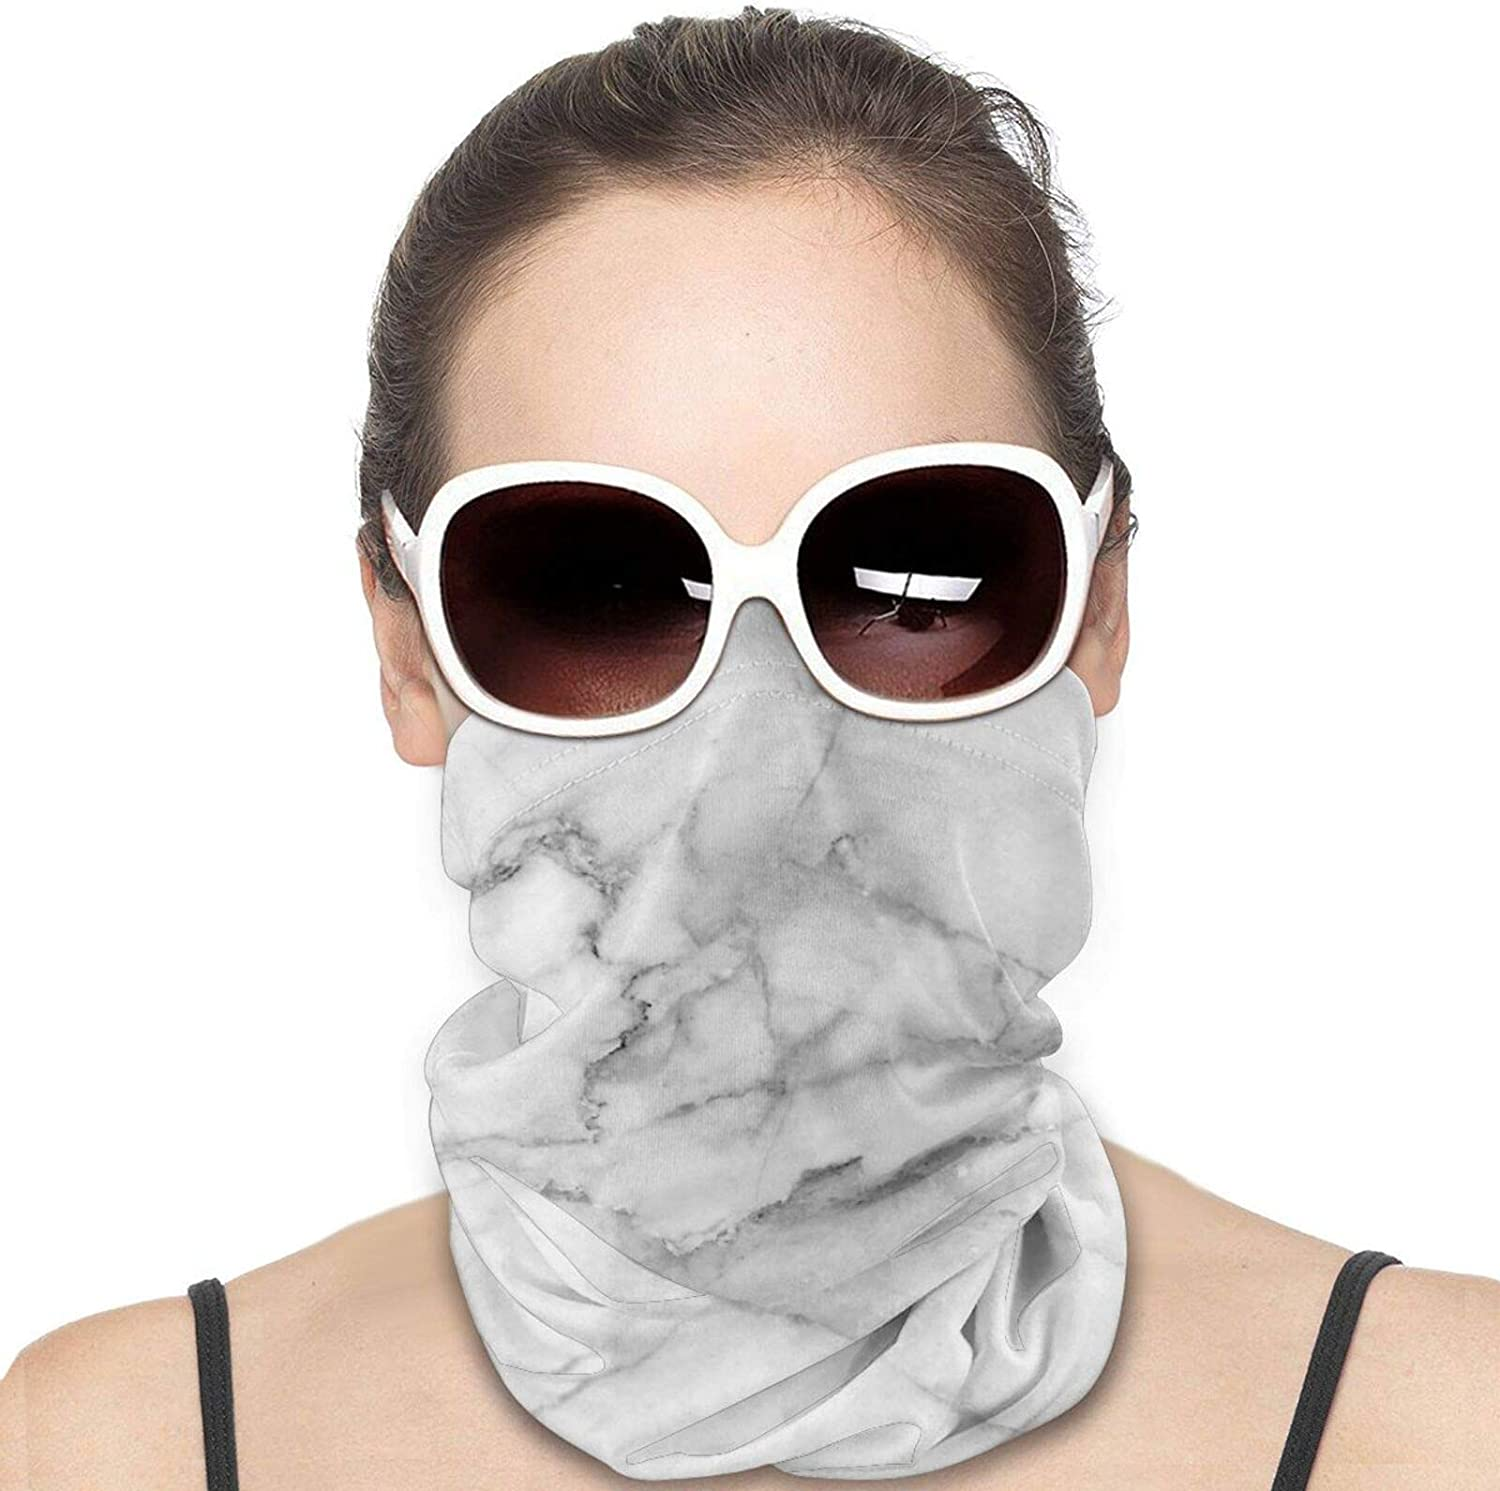 Natural White Marble Texture Neck Gaiter Windproof Face Cover Balaclava Outdoors Magic Scarf Headband for Men Women Motorcycling Fishing Running Climbing